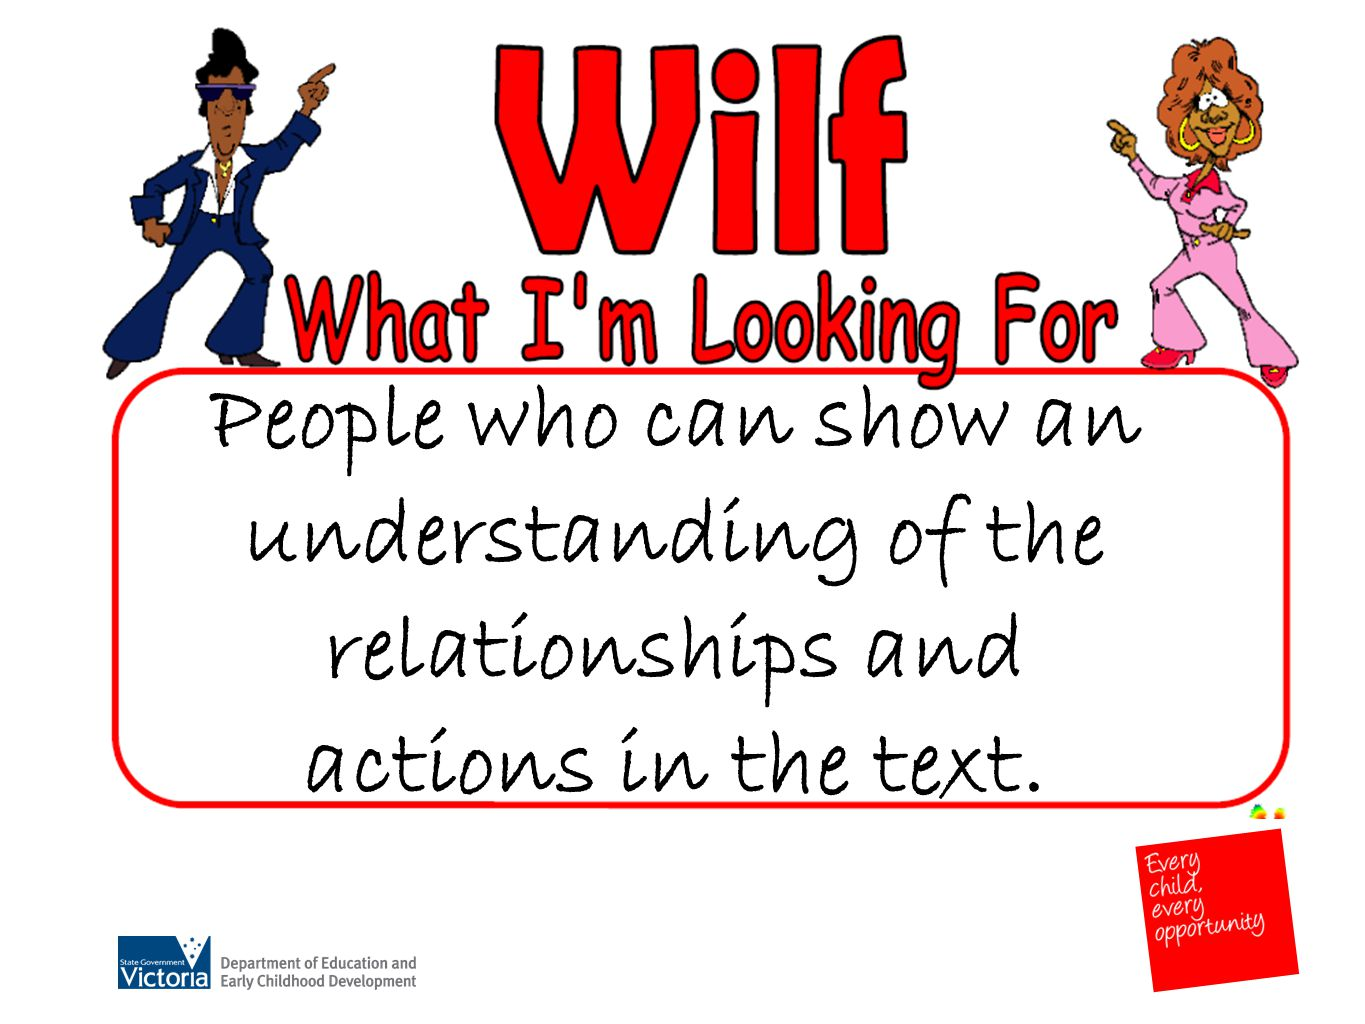 People who can show an understanding of the relationships and actions in the text.